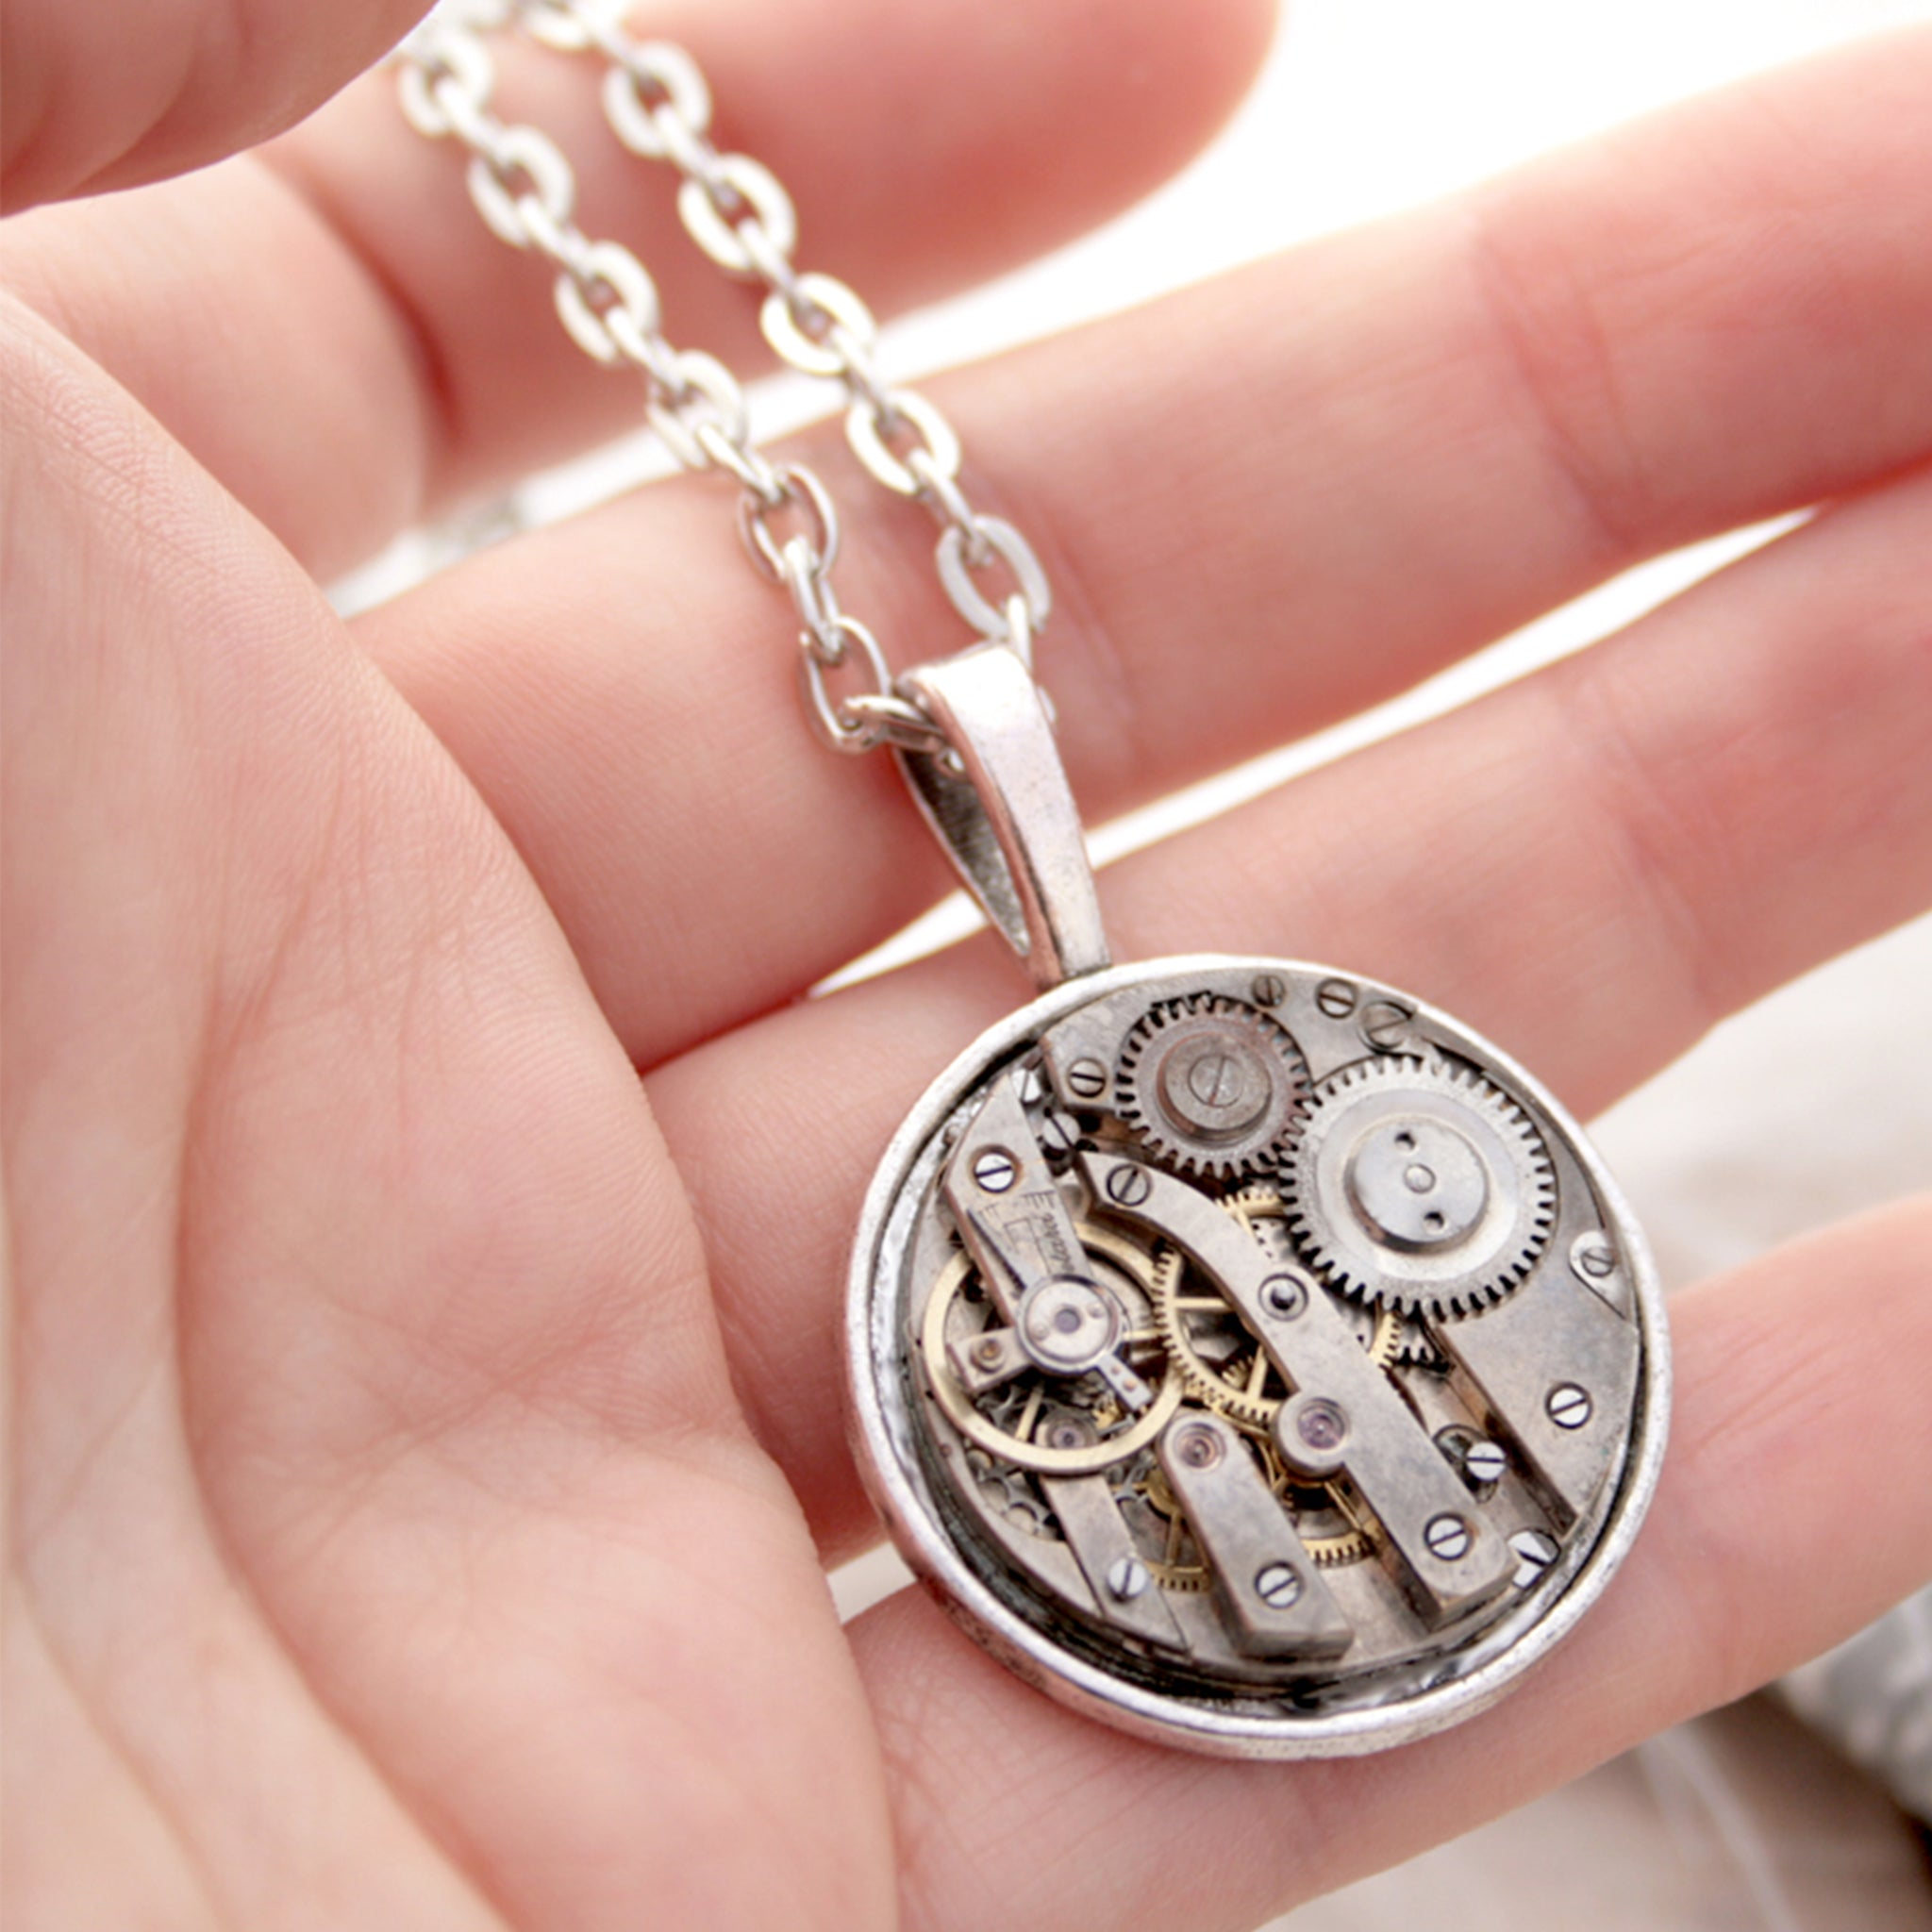 Unique Silver Pendant Necklace with Watch Mechanism in Steampunk Style